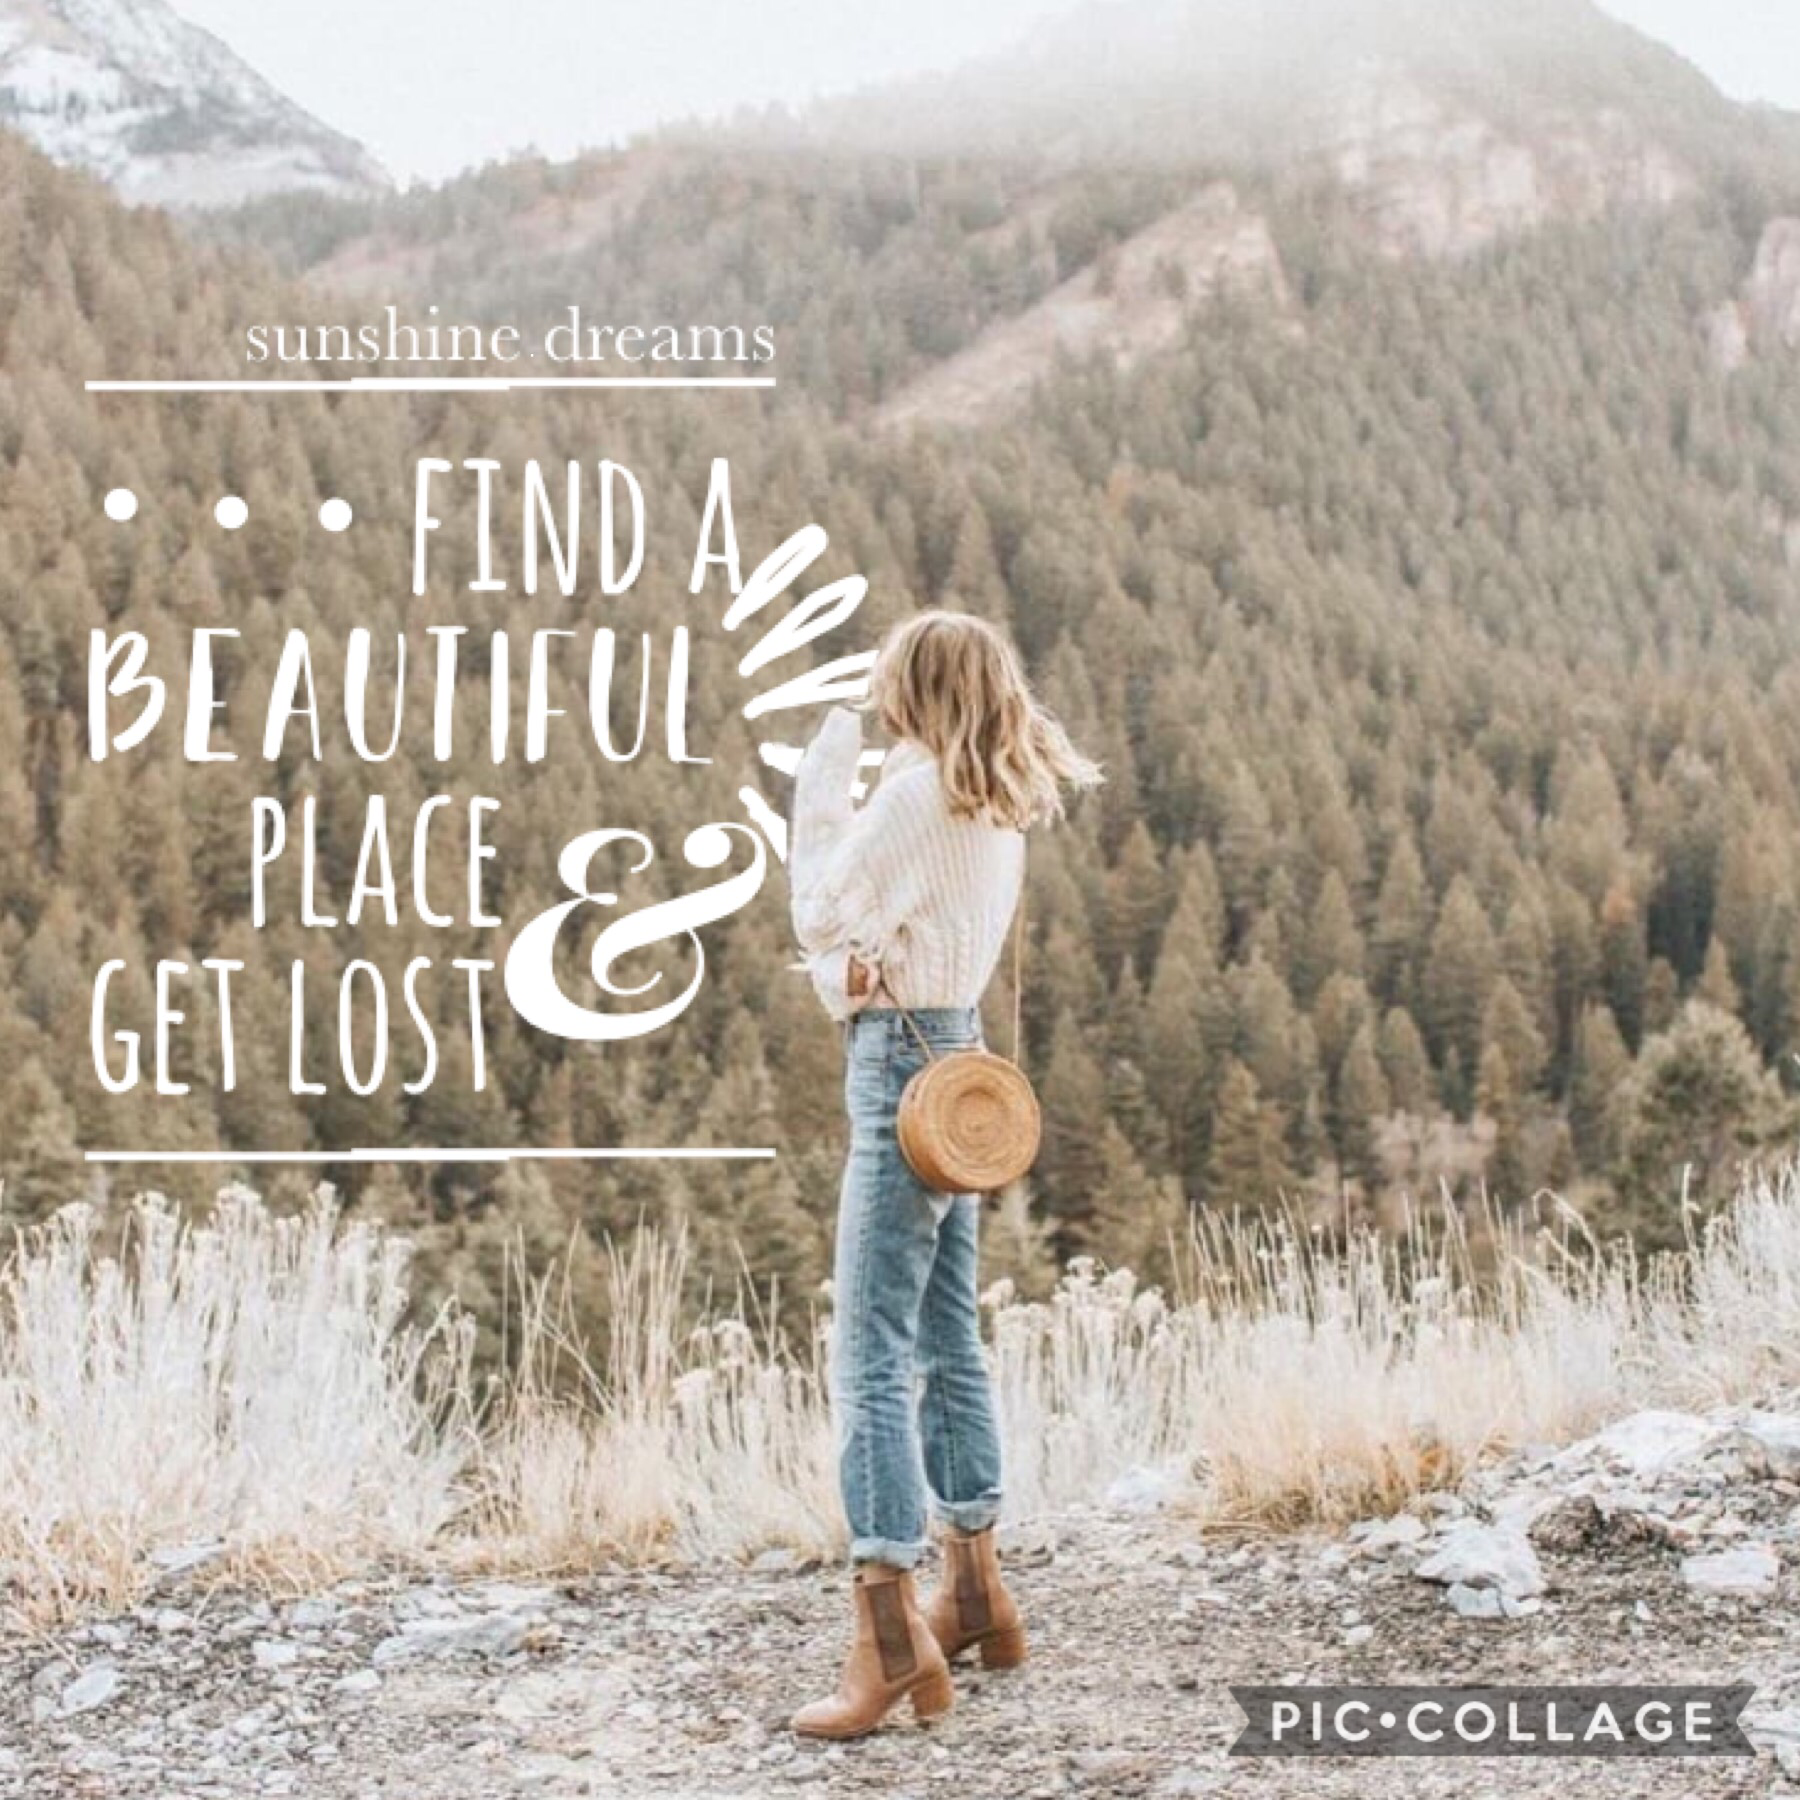 find a beautiful place & get lost🌲